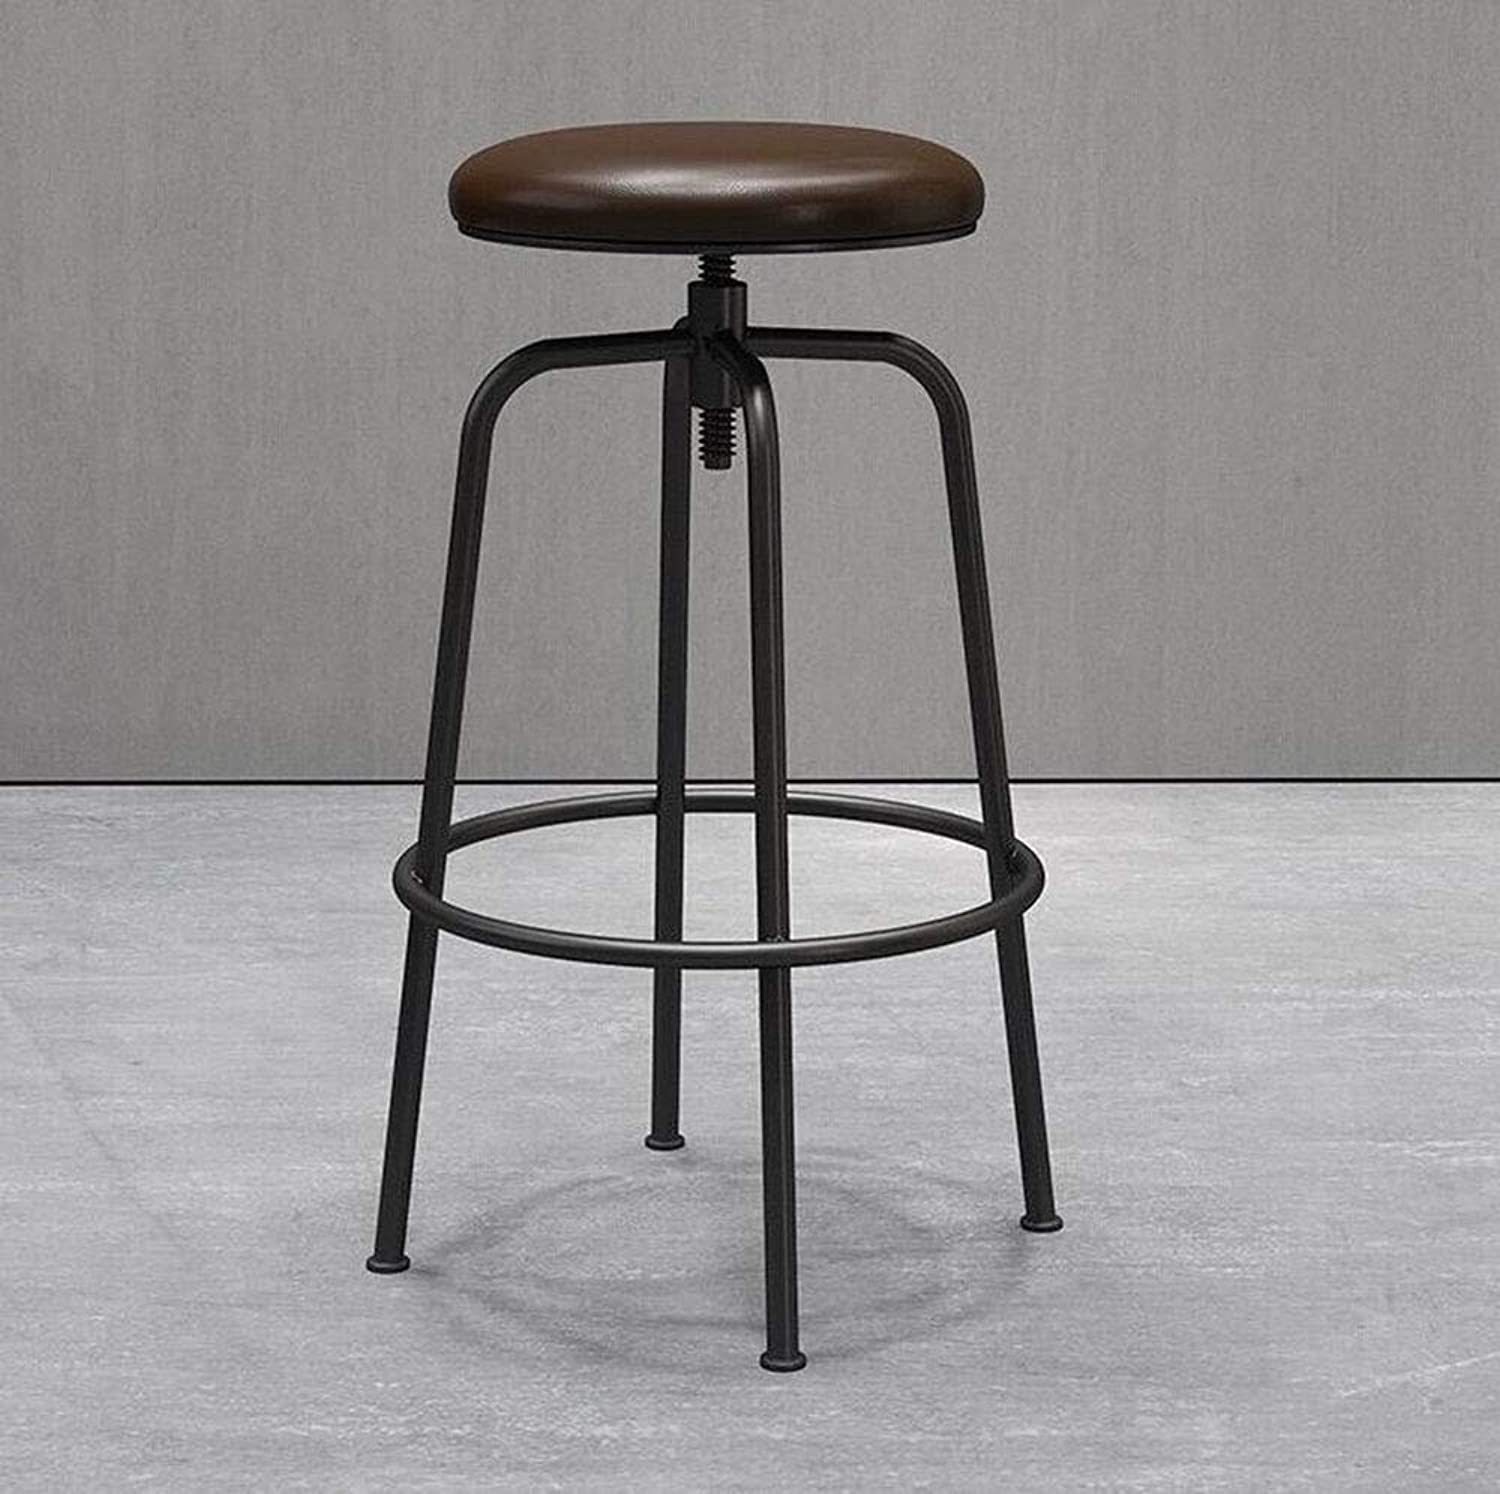 FENG Fan Iron Bar Stool Vintage Bar Chair Stool Dining Chair Leisure Lift Chair (color   Black, Size   60cm)